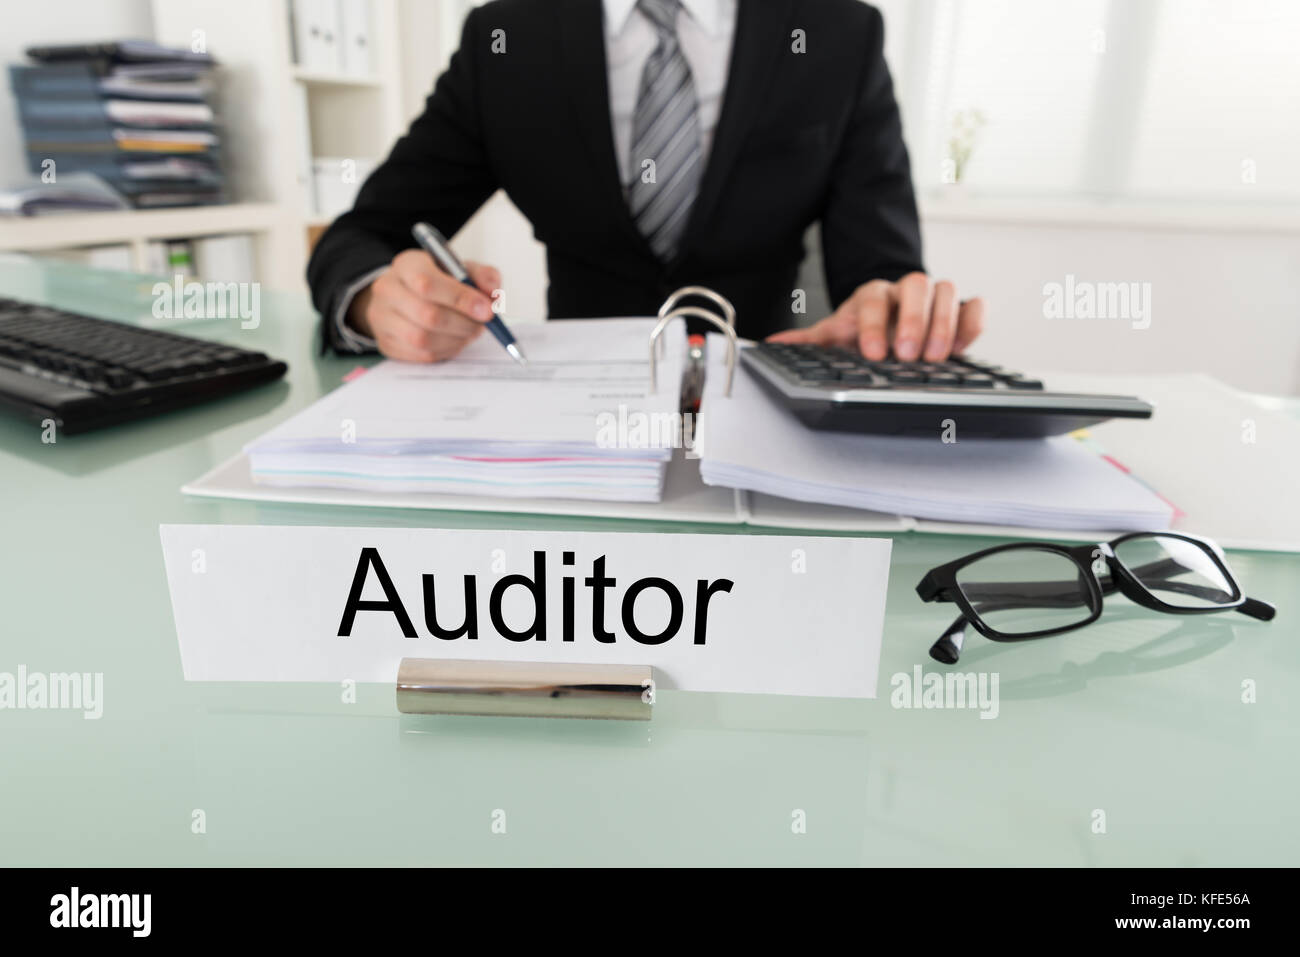 Photo Of Male Auditor Calculating Bill In Office - Stock Image